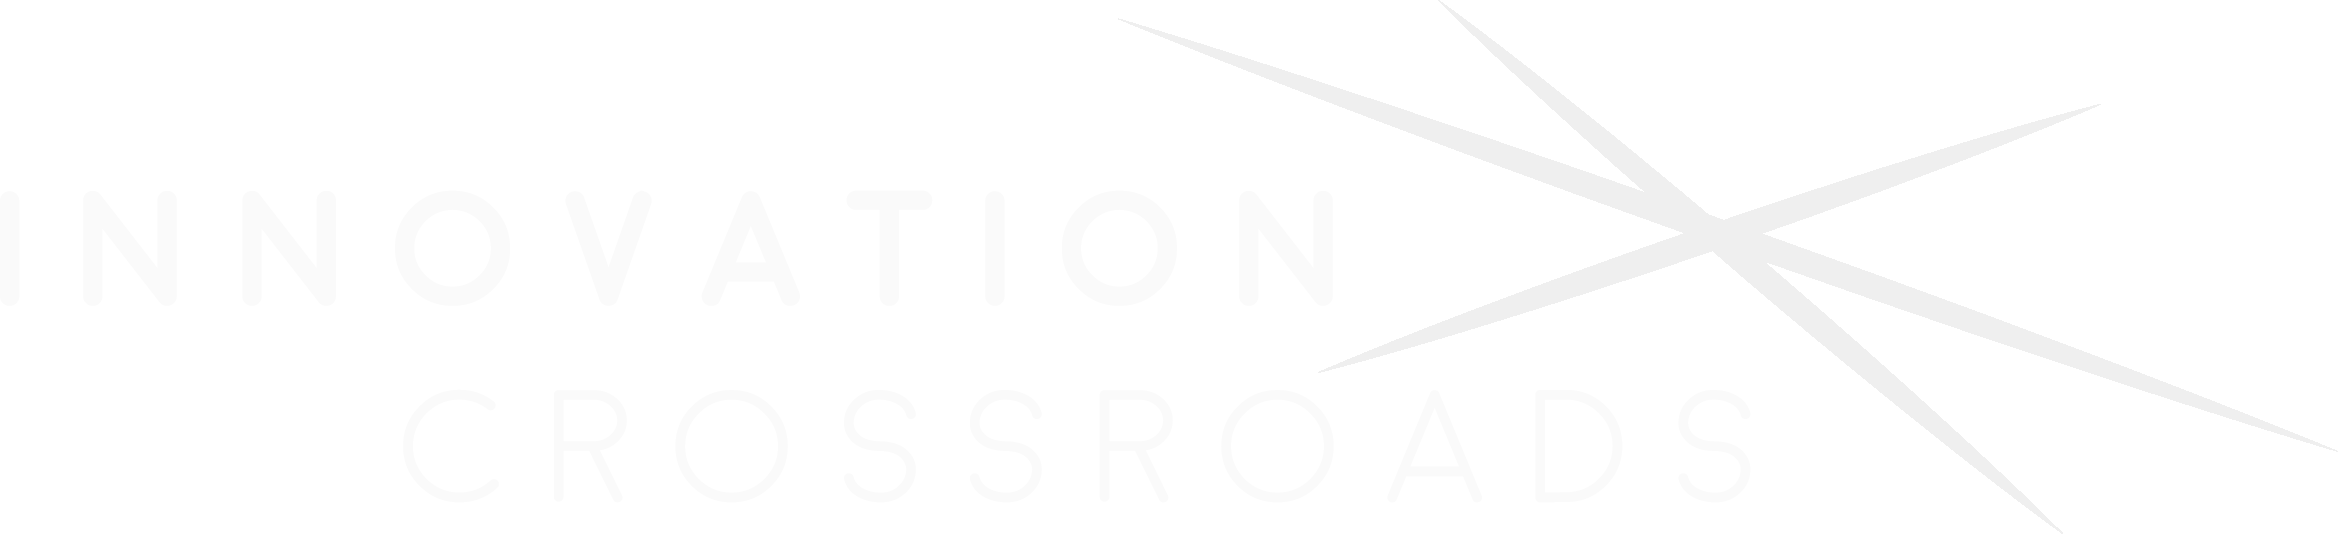 Innovation Crossroads Logo